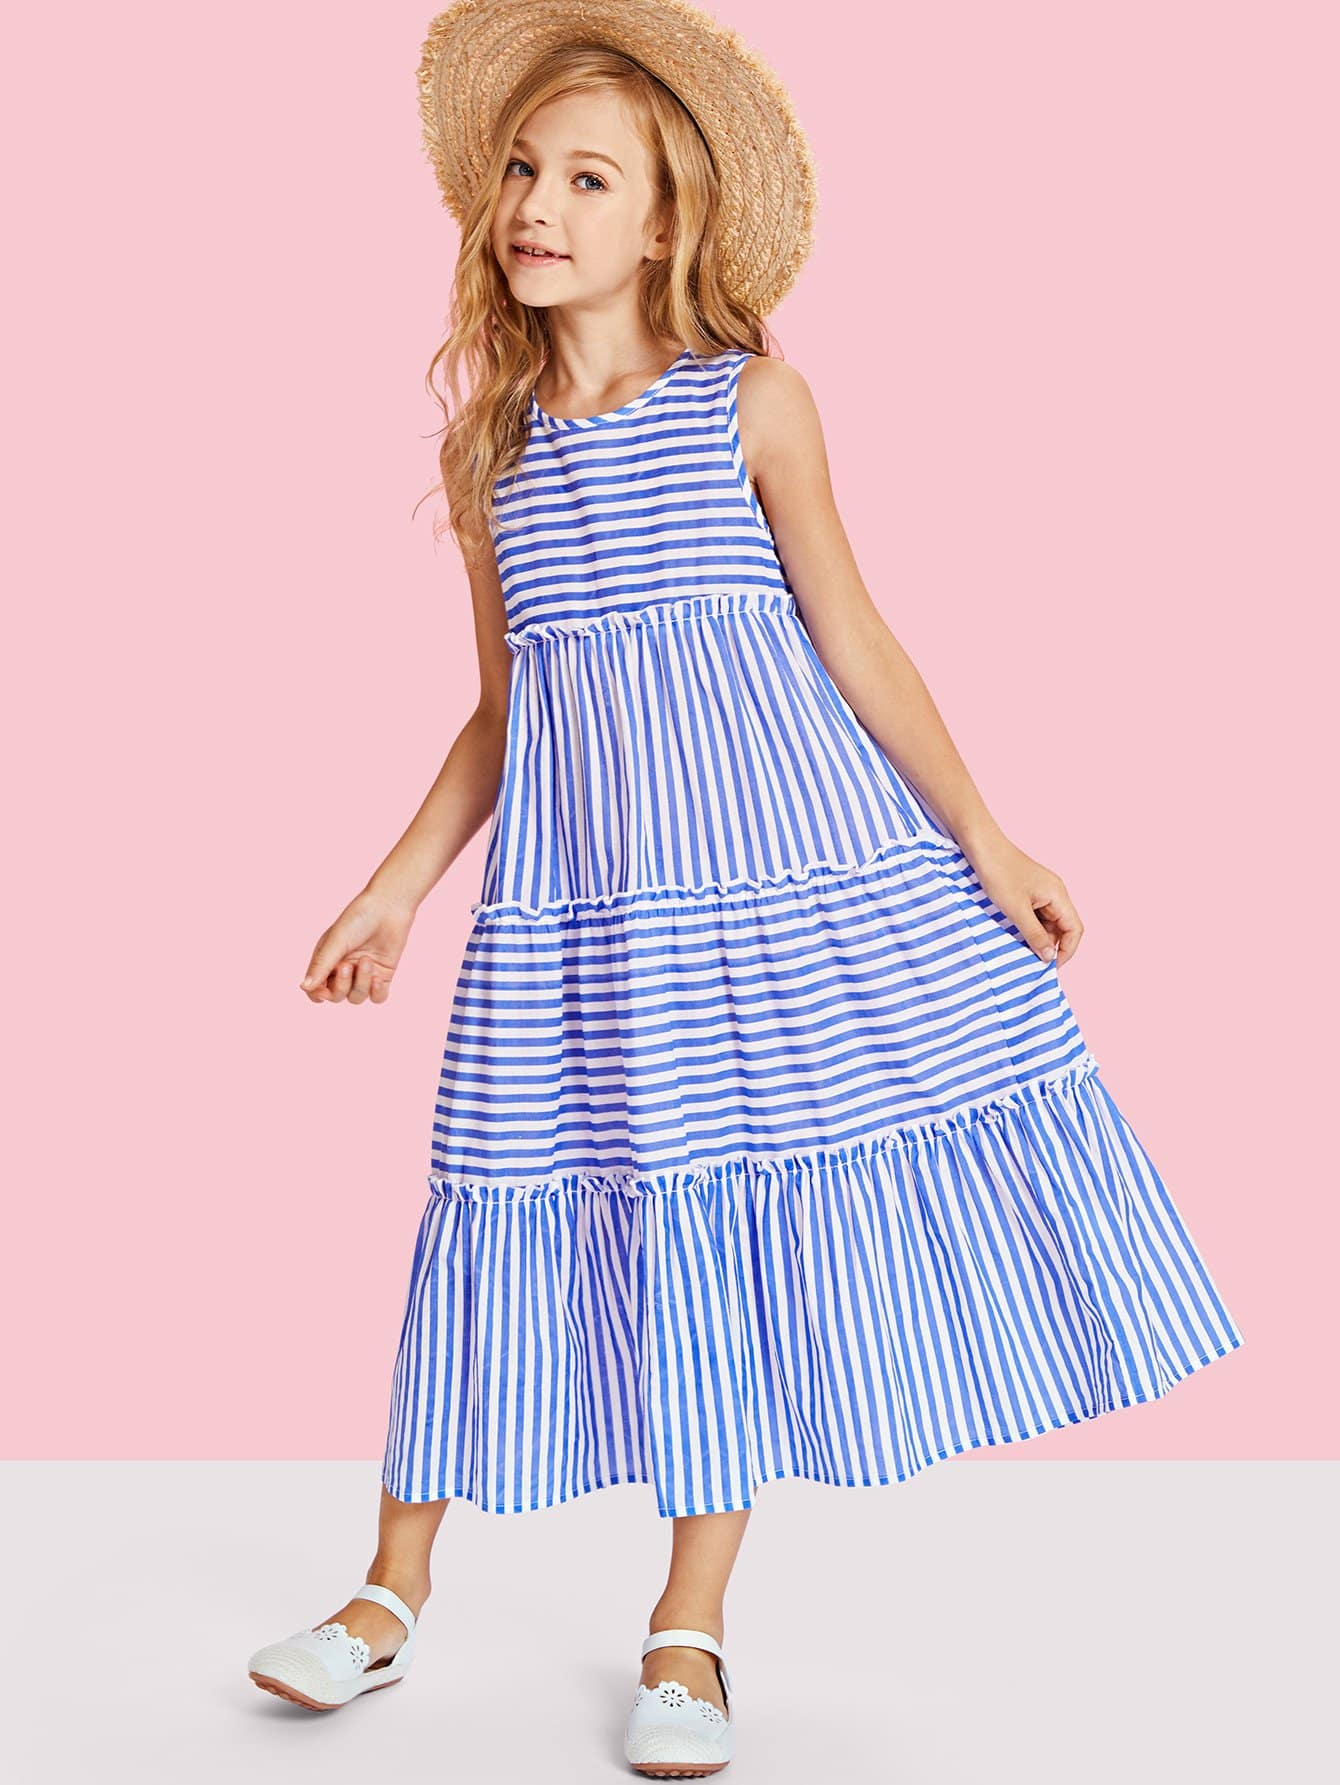 Tiered Mixed Striped Sleeveless Dress lace neck tiered striped dress